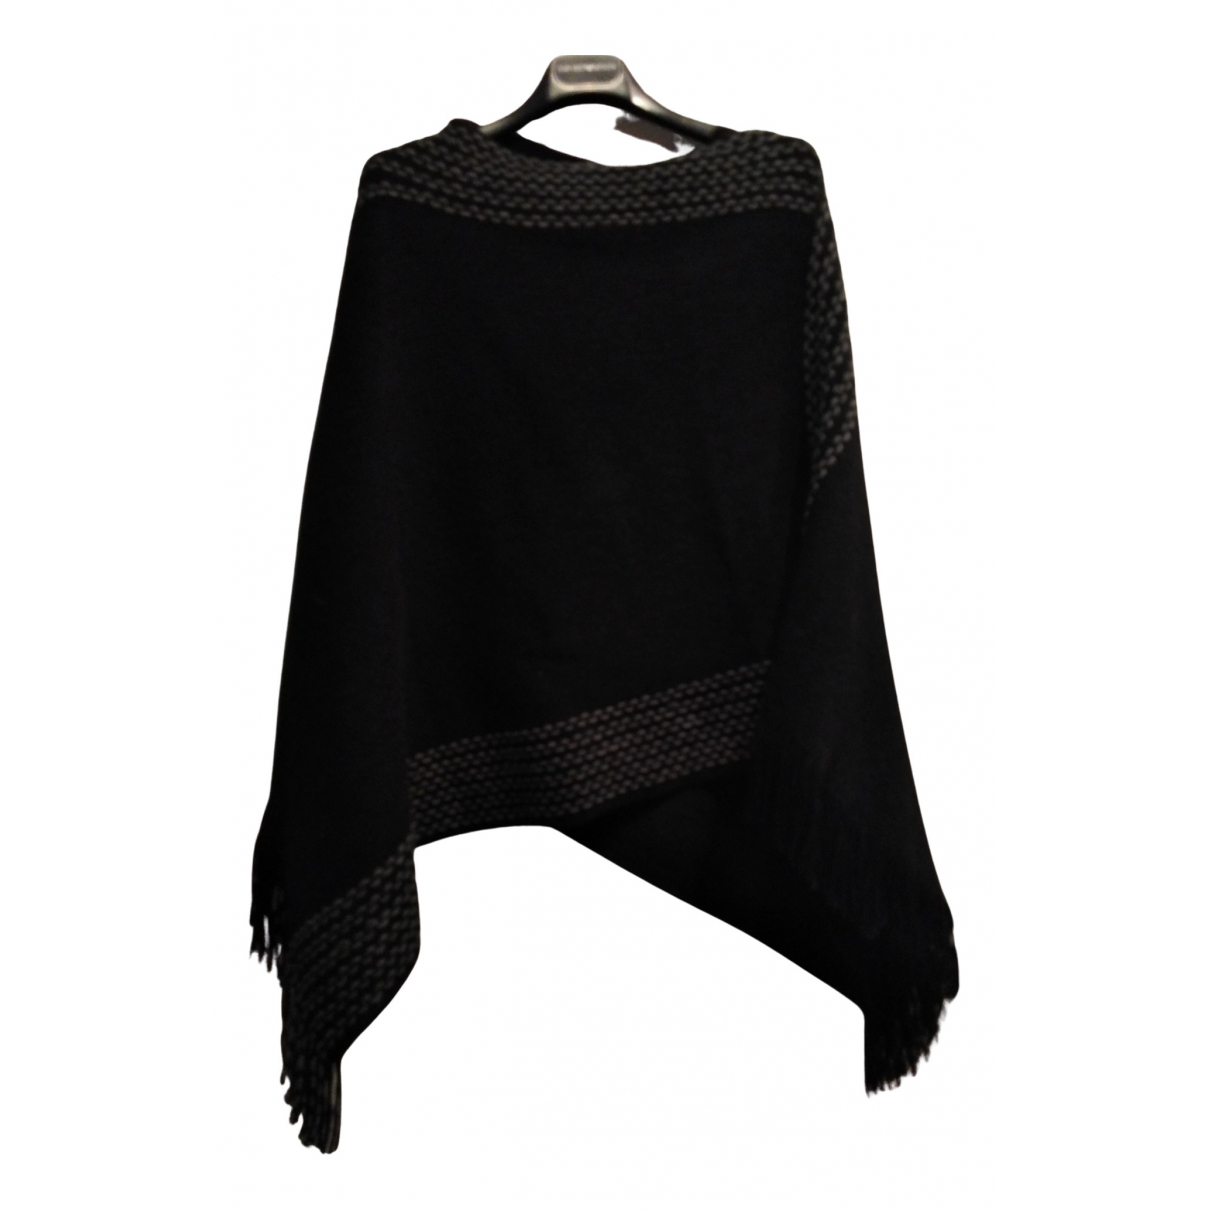 Armani Jeans N Black scarf for Women N